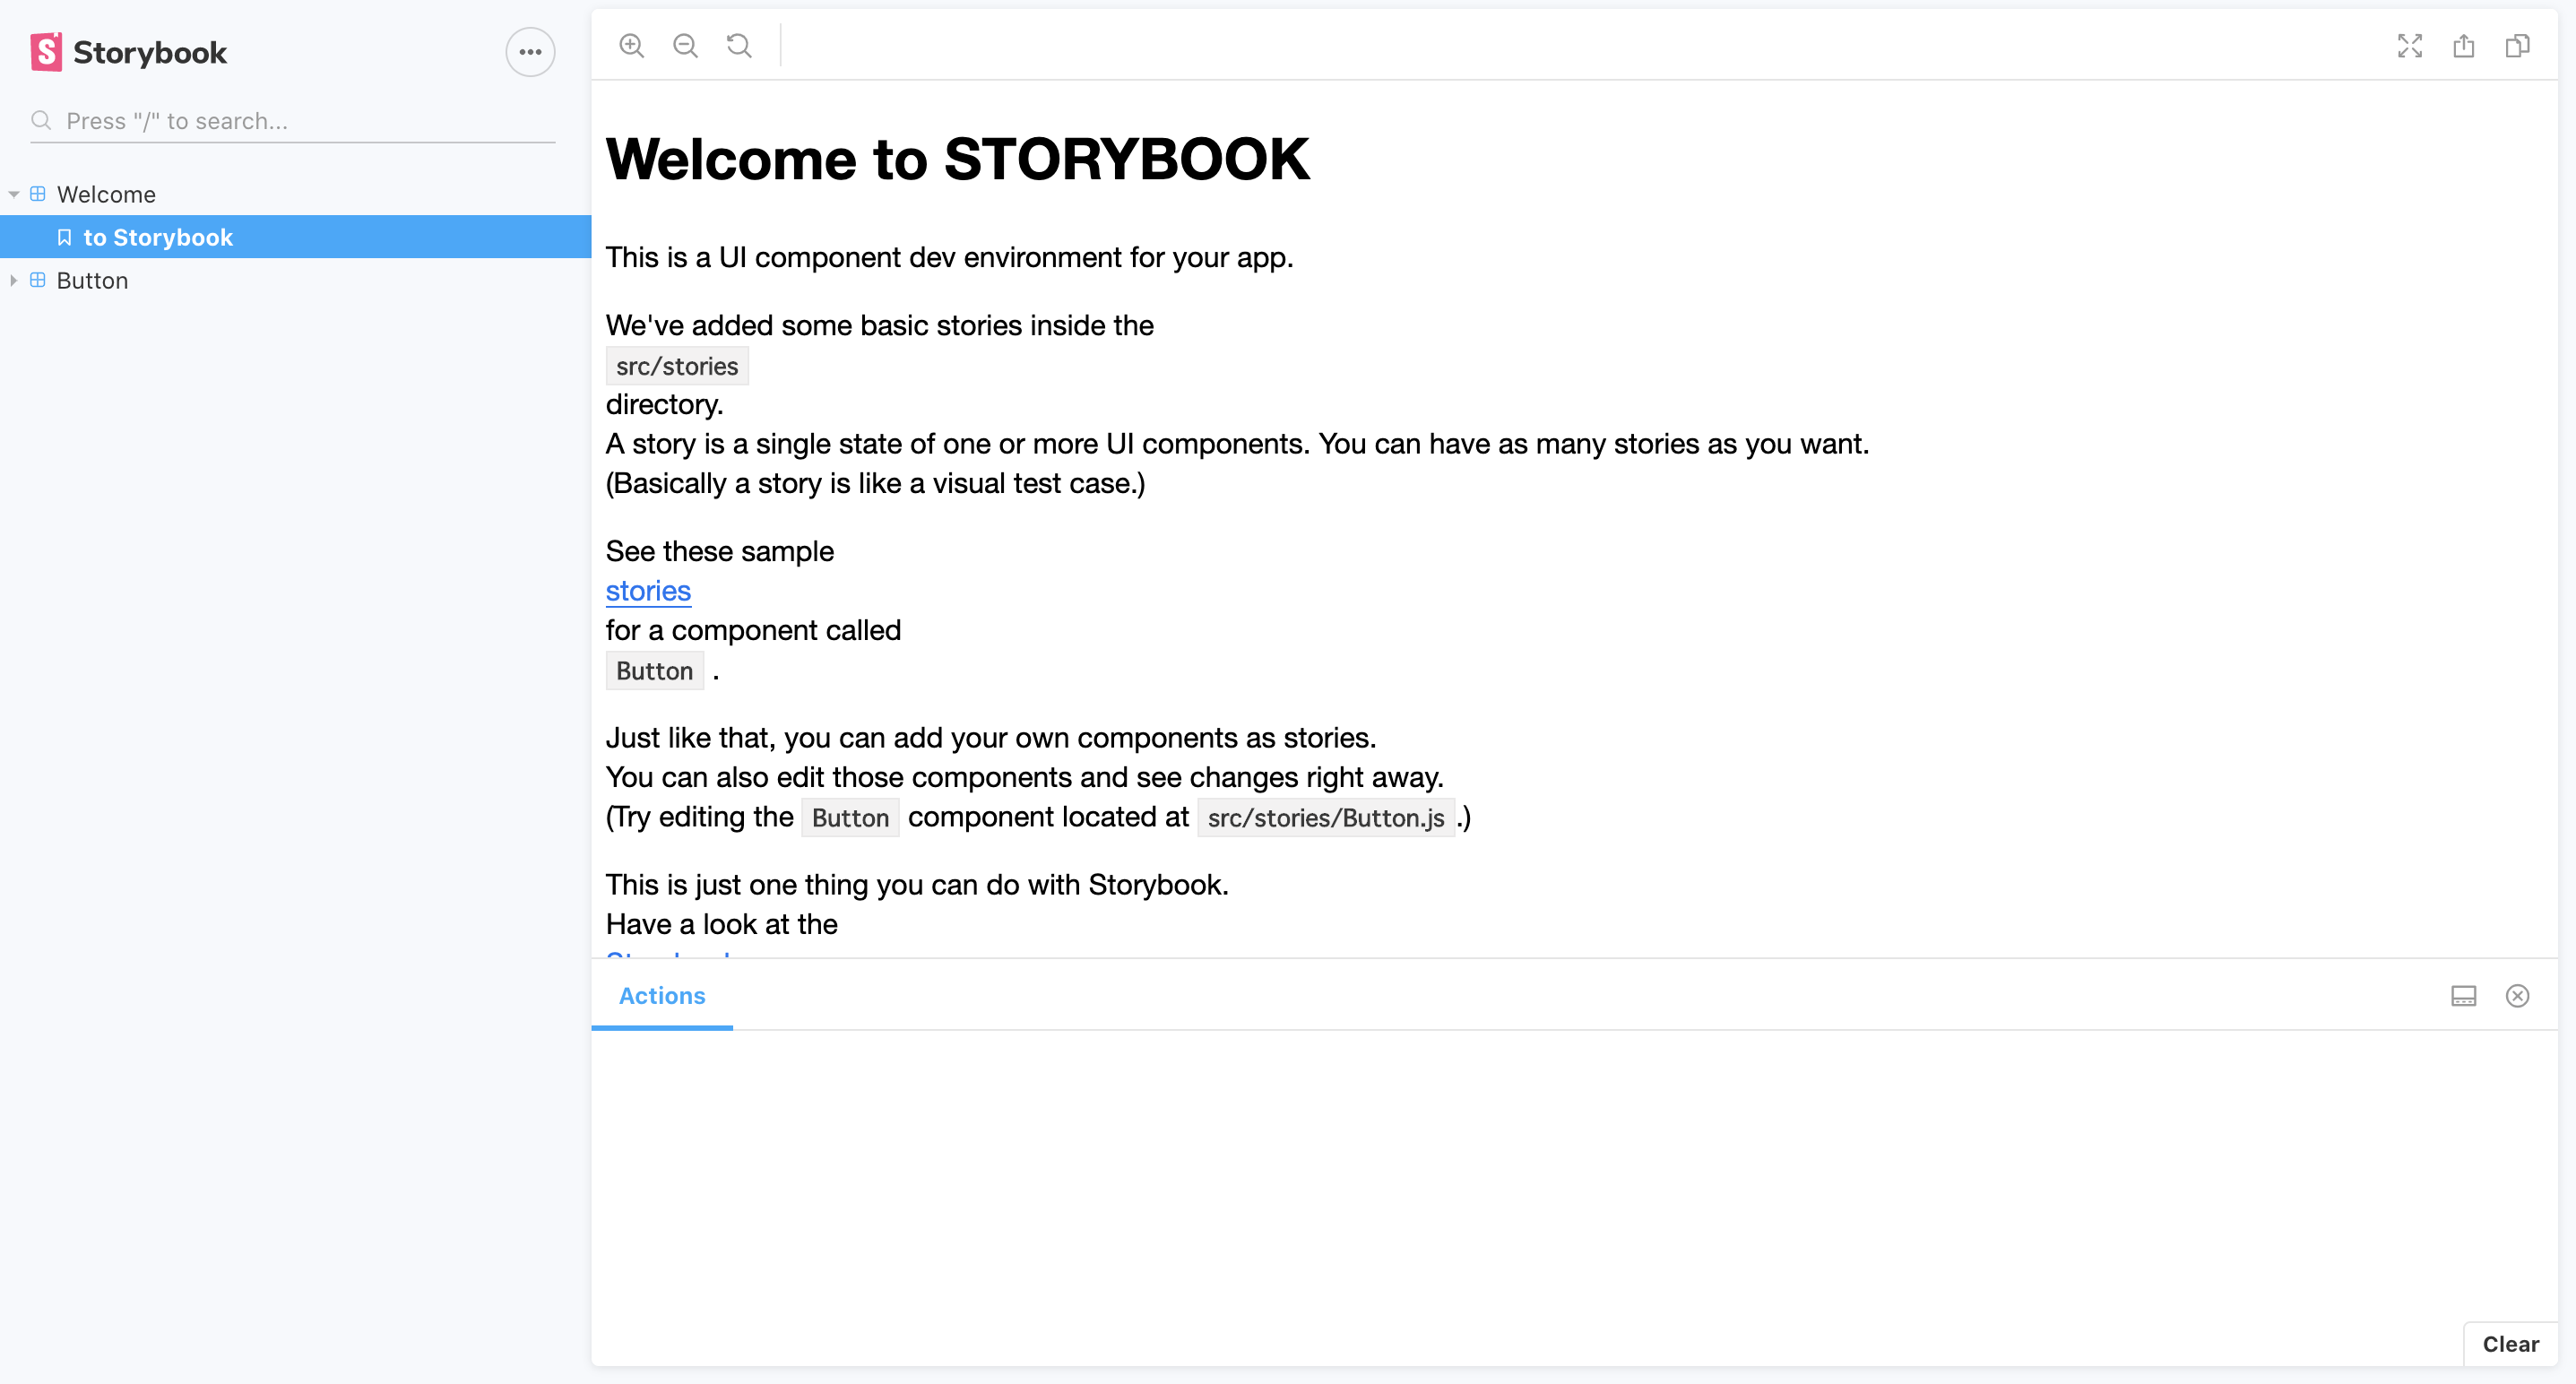 StoryBook-ReviewApps